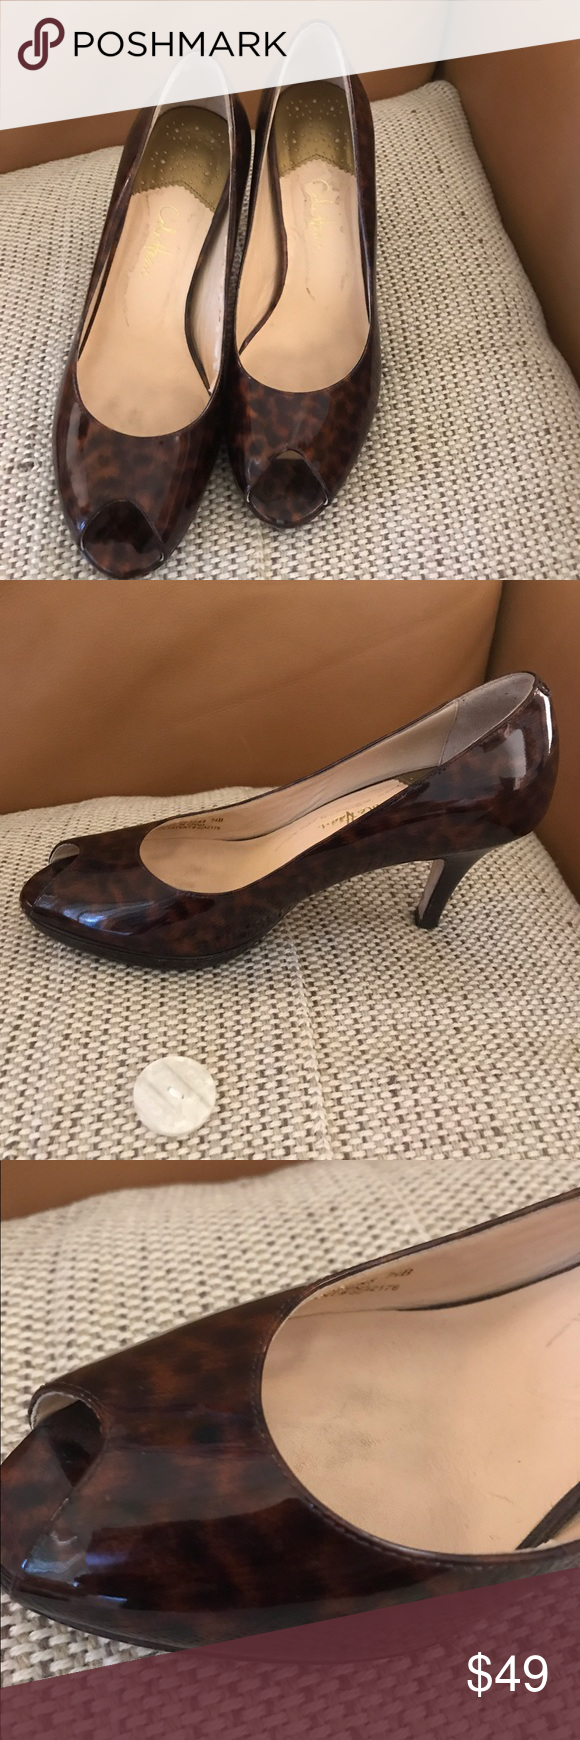 """Cole Haan Nike Air  pumps shoes 7.5 3.5"""" heel Gold detail on heel.  Pumps in excellent condition.  Worm twice. Cole Haan Shoes Heels"""